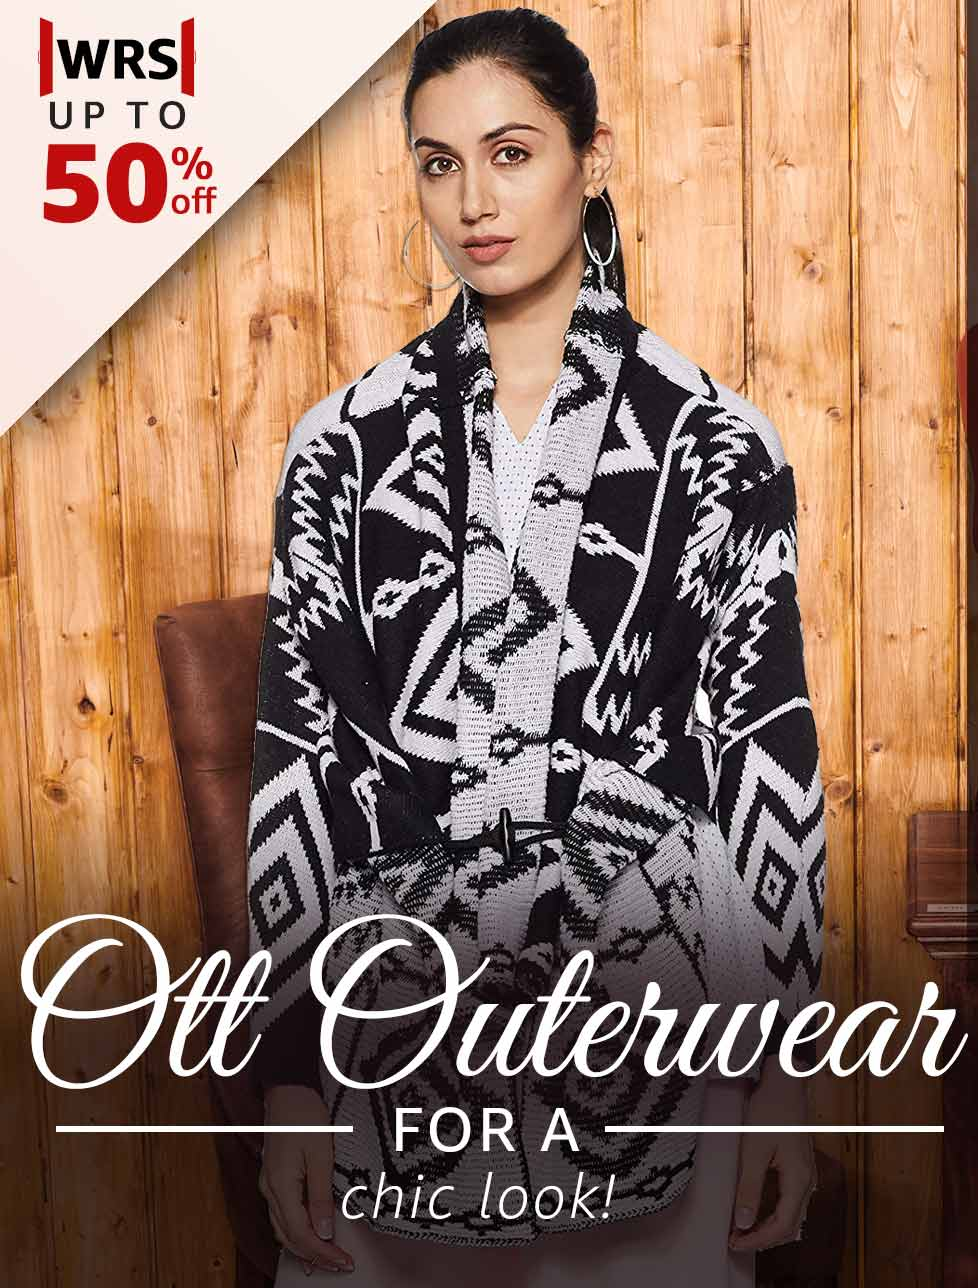 OTT outerwear for a chic look